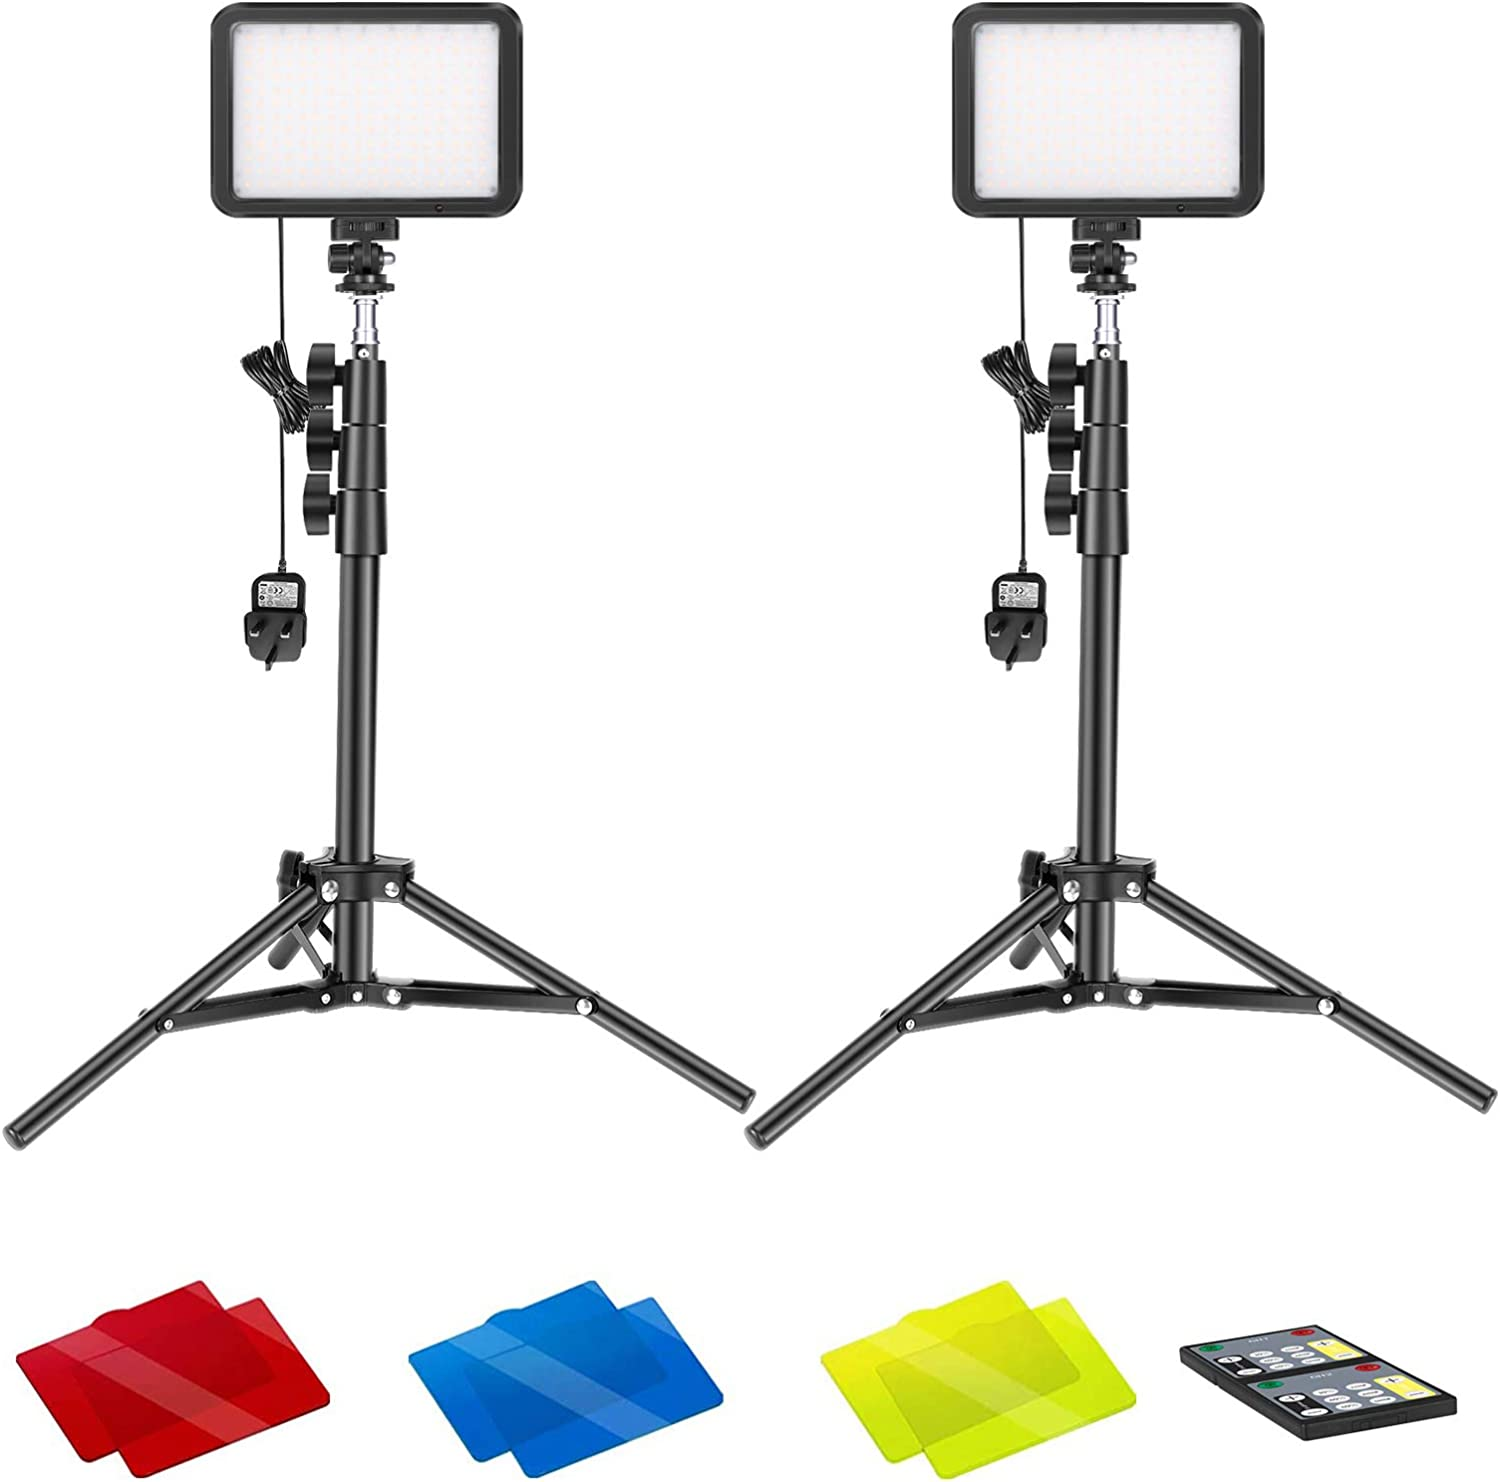 Neewer 2-Pack Conference Lighting Kit with Remote Control for Zoom Call Meeting//Remote Working//Self Broadcasting//Live Streaming 3200K-5600K Dimmable LED Video Light with Tripod Stand//Color Filters